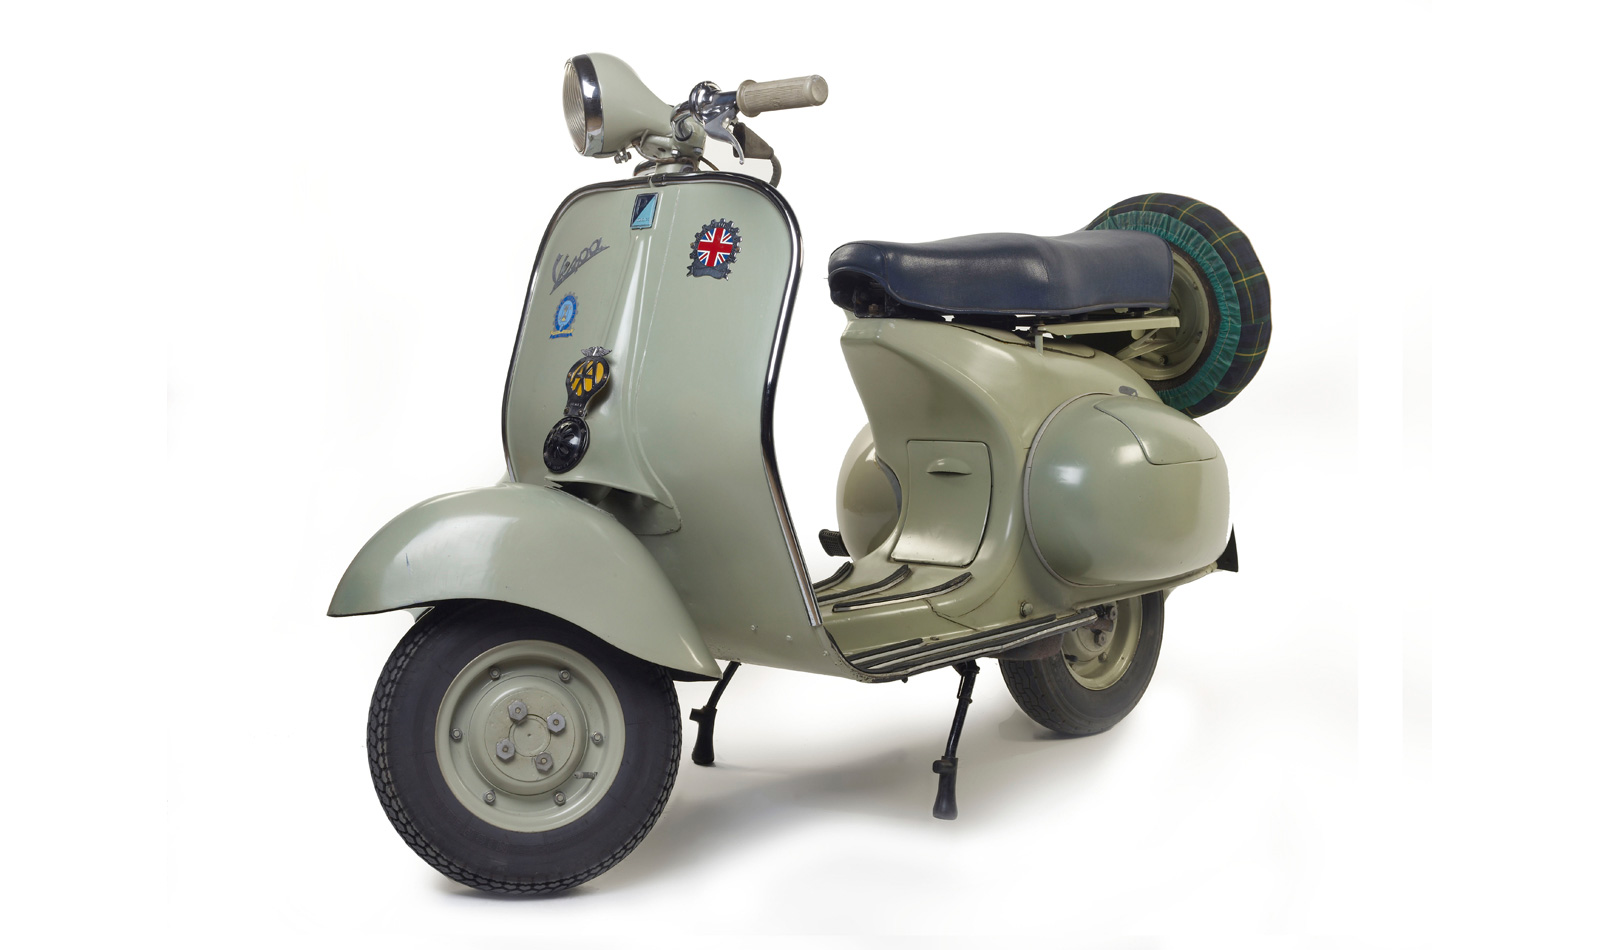 Vespa scooter on display at the Museum of London.